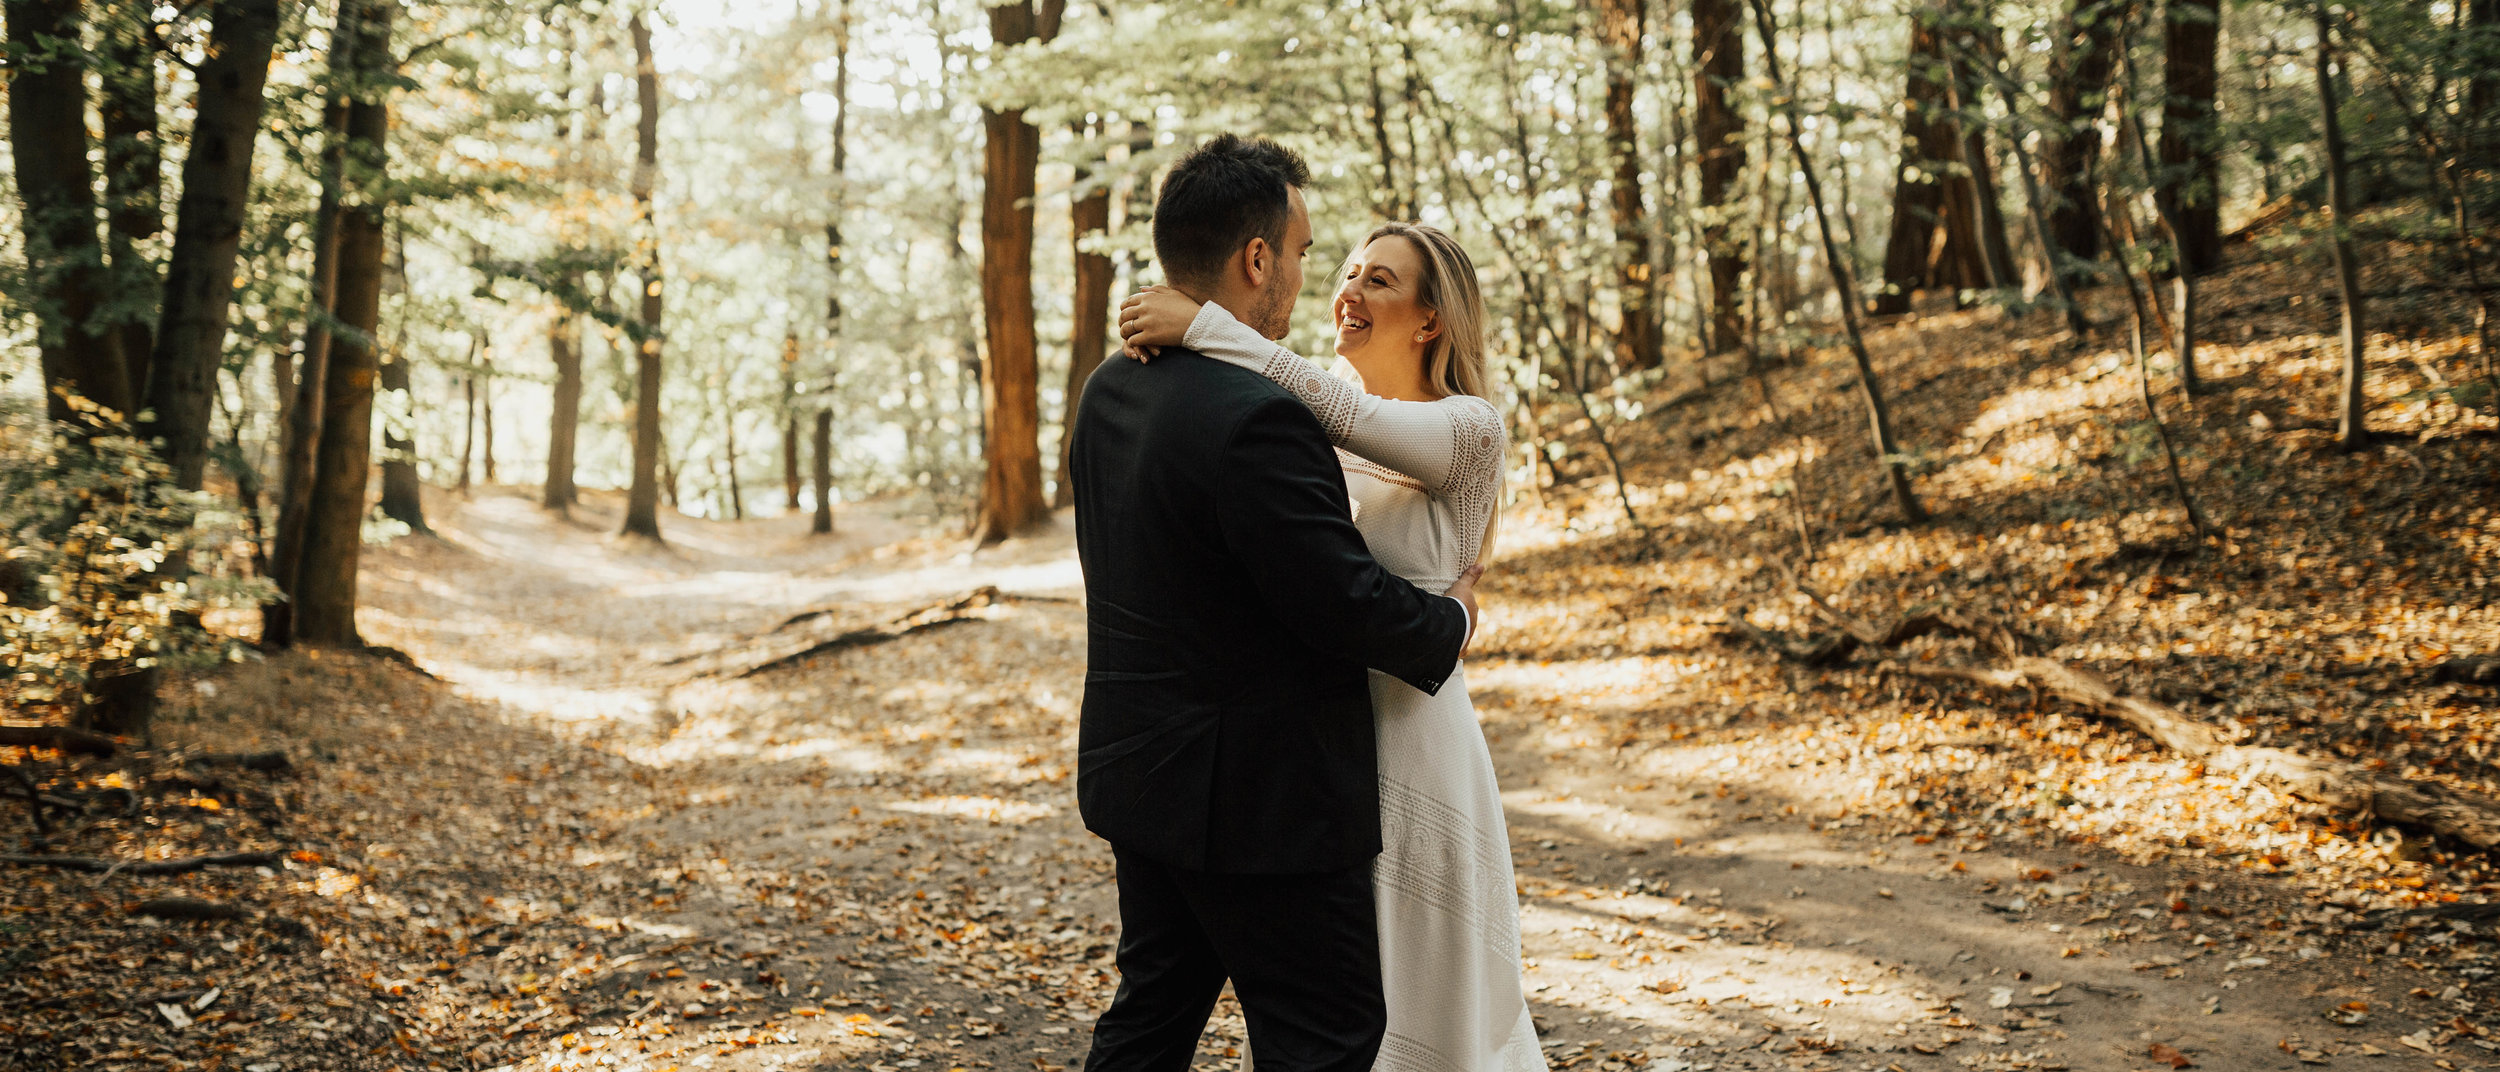 ULA & MARCIN CINEMATIC WEDDING FILM - This warm October brought us to the west of Poland, where we met a wonderful couple, Ula and Marcin, and we became part of their great day!